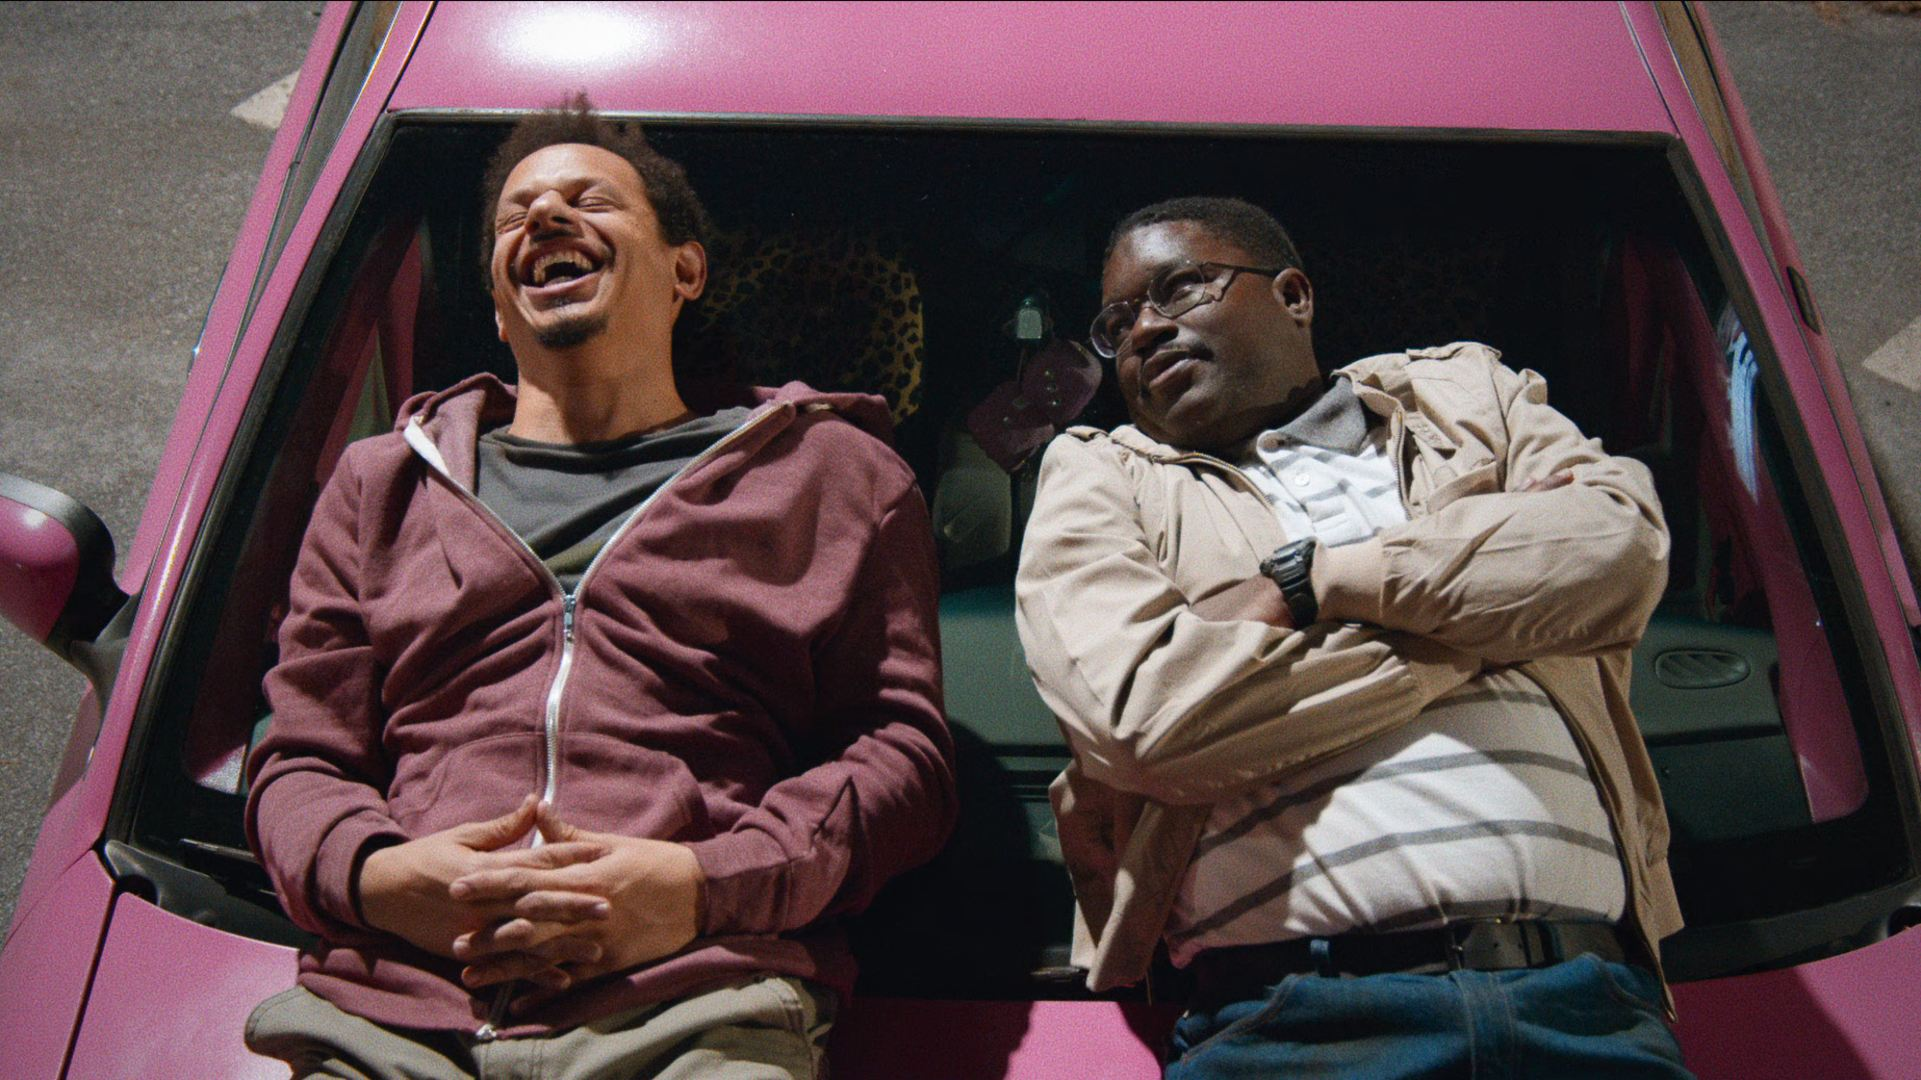 Bad Trip Trailer: Eric Andre's Raunchy Prank Comedy Will Shock You